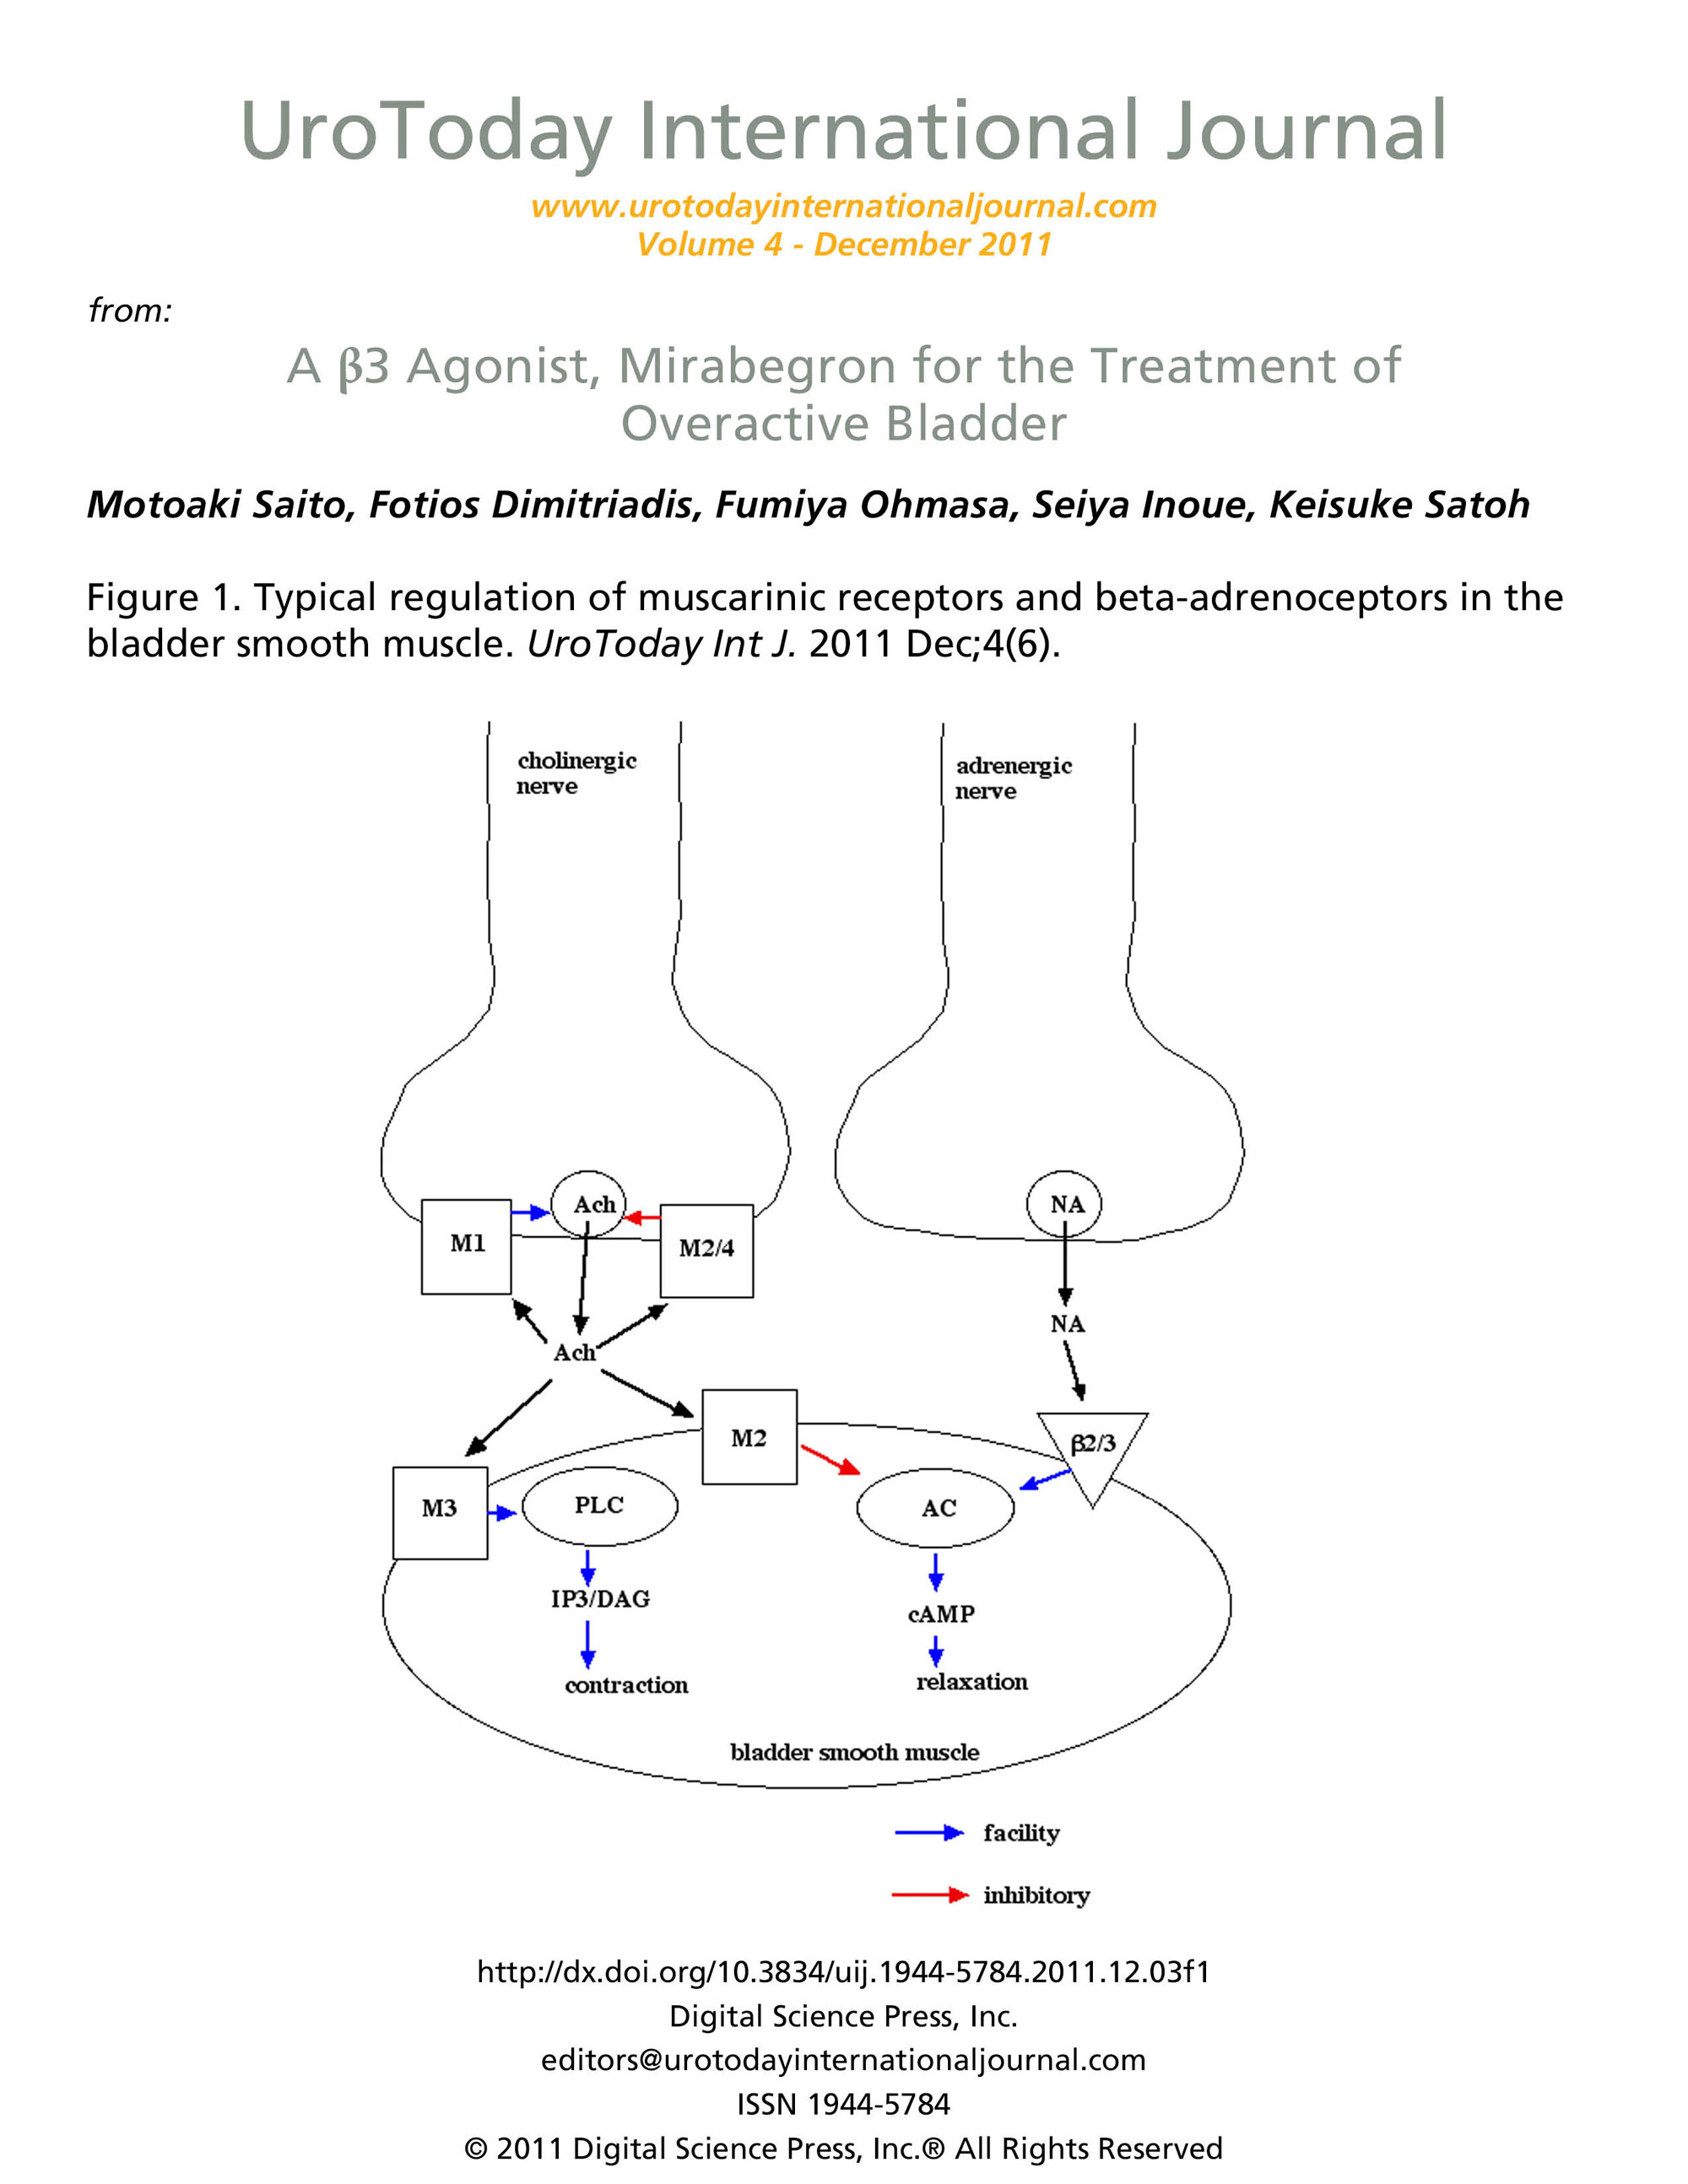 A 3 Agonist Mirabegron For The Treatment Of Overactive Bladder